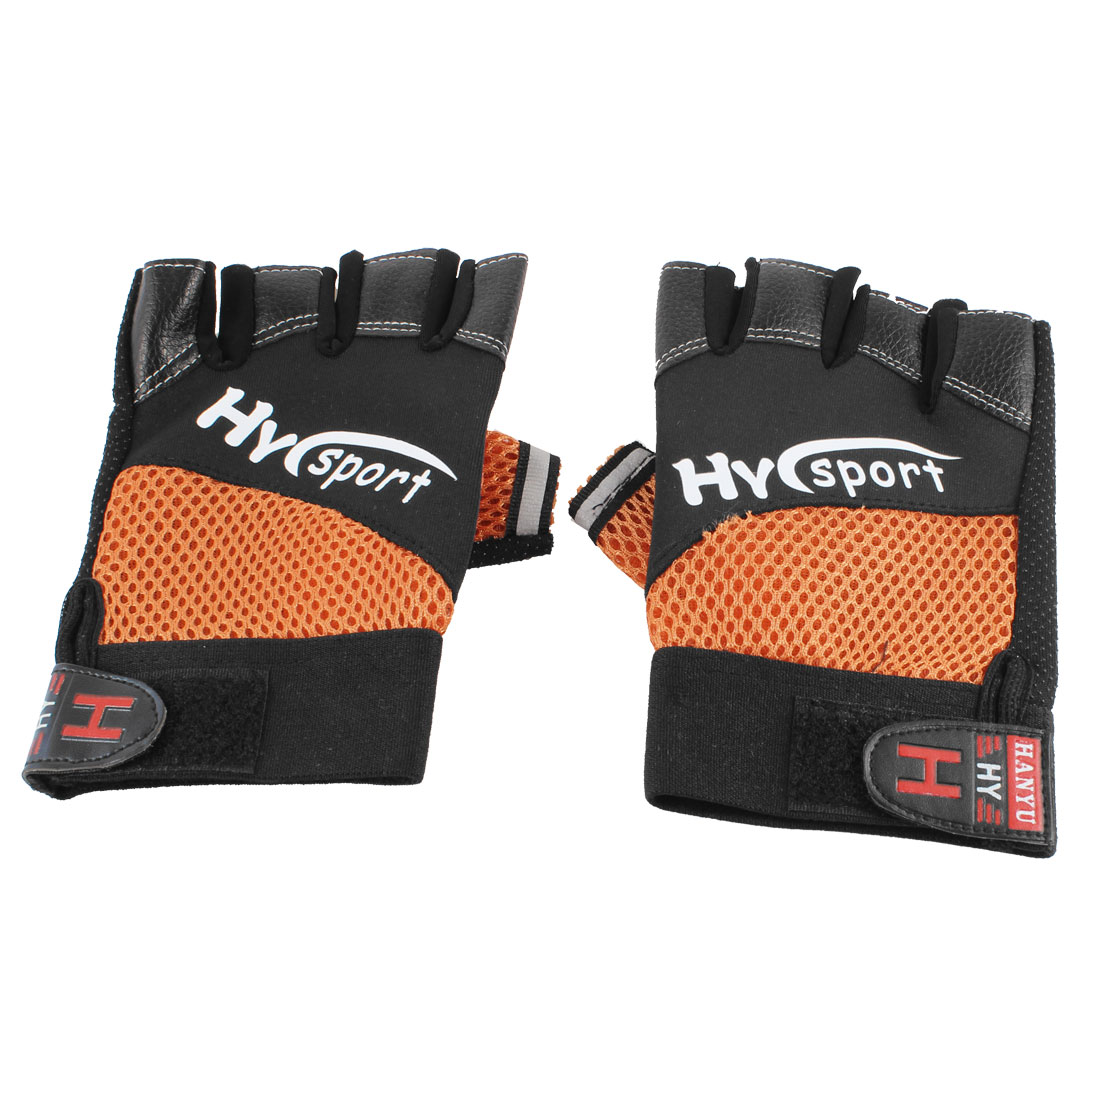 Pair Man Black Orange Mesh Hole Breathable Half Finger Sports Gloves